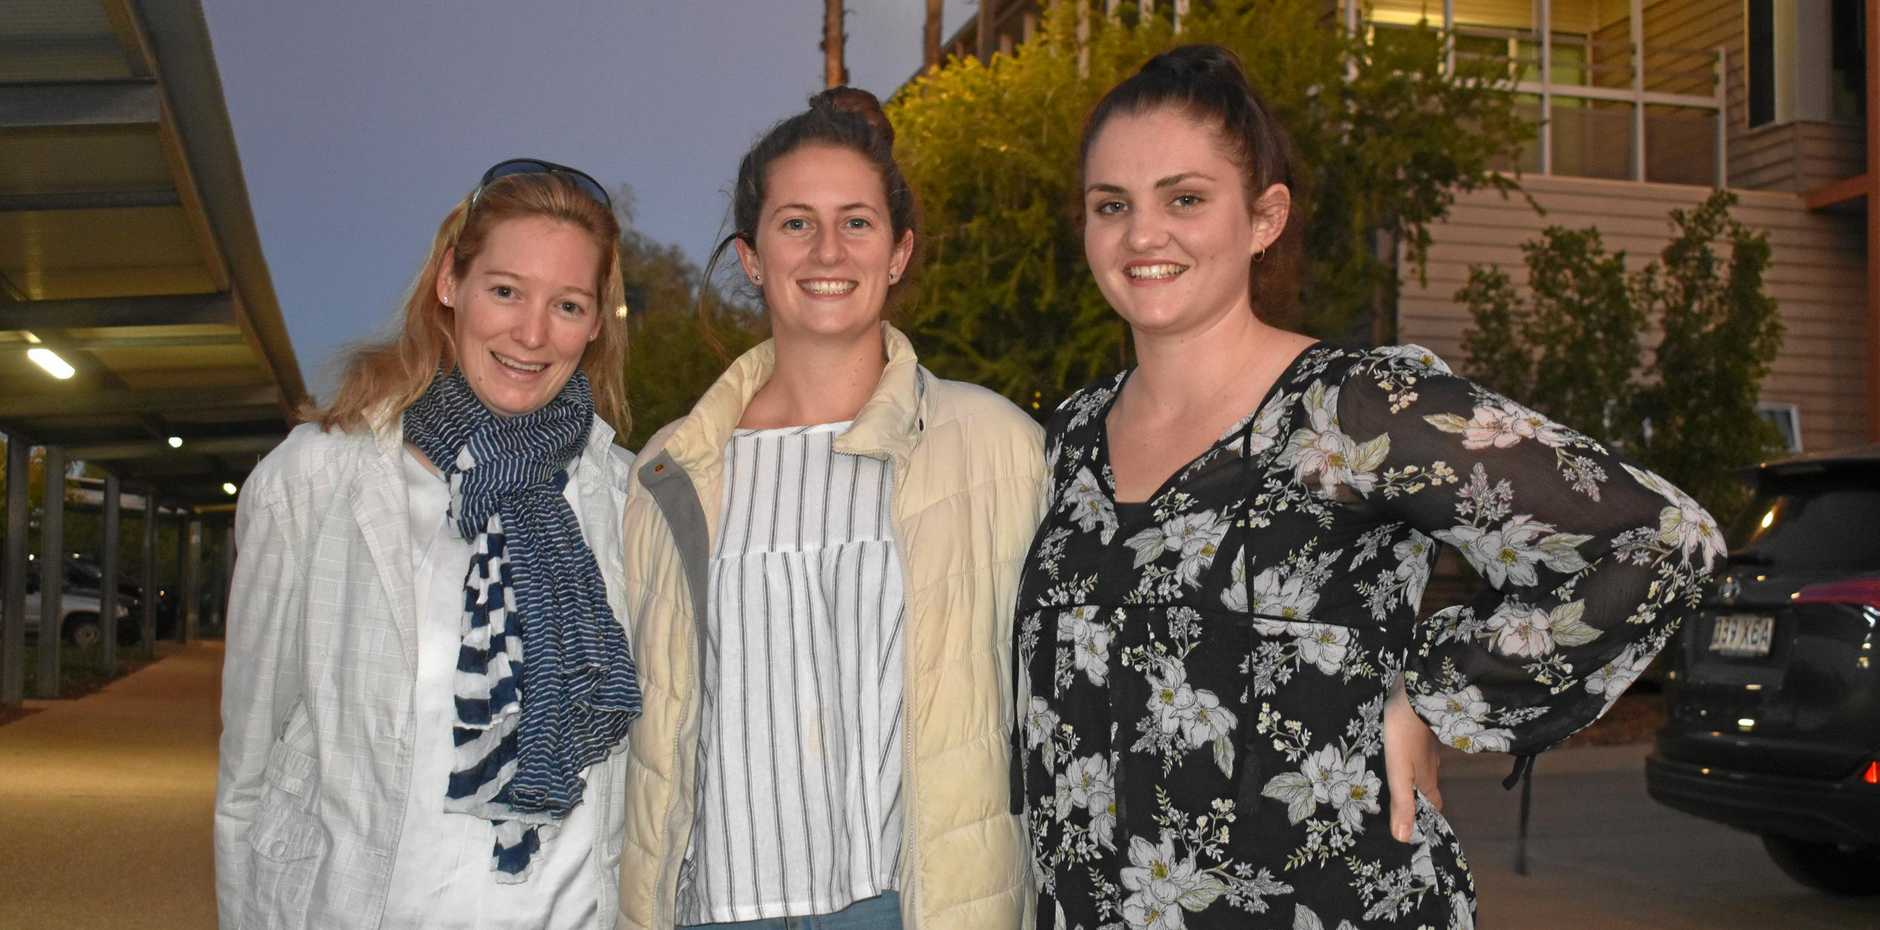 ON THE JOB: Nina Sugg, Abbey Bates and Kayla Brock will be based around the southwest for their graduate year in the health service.